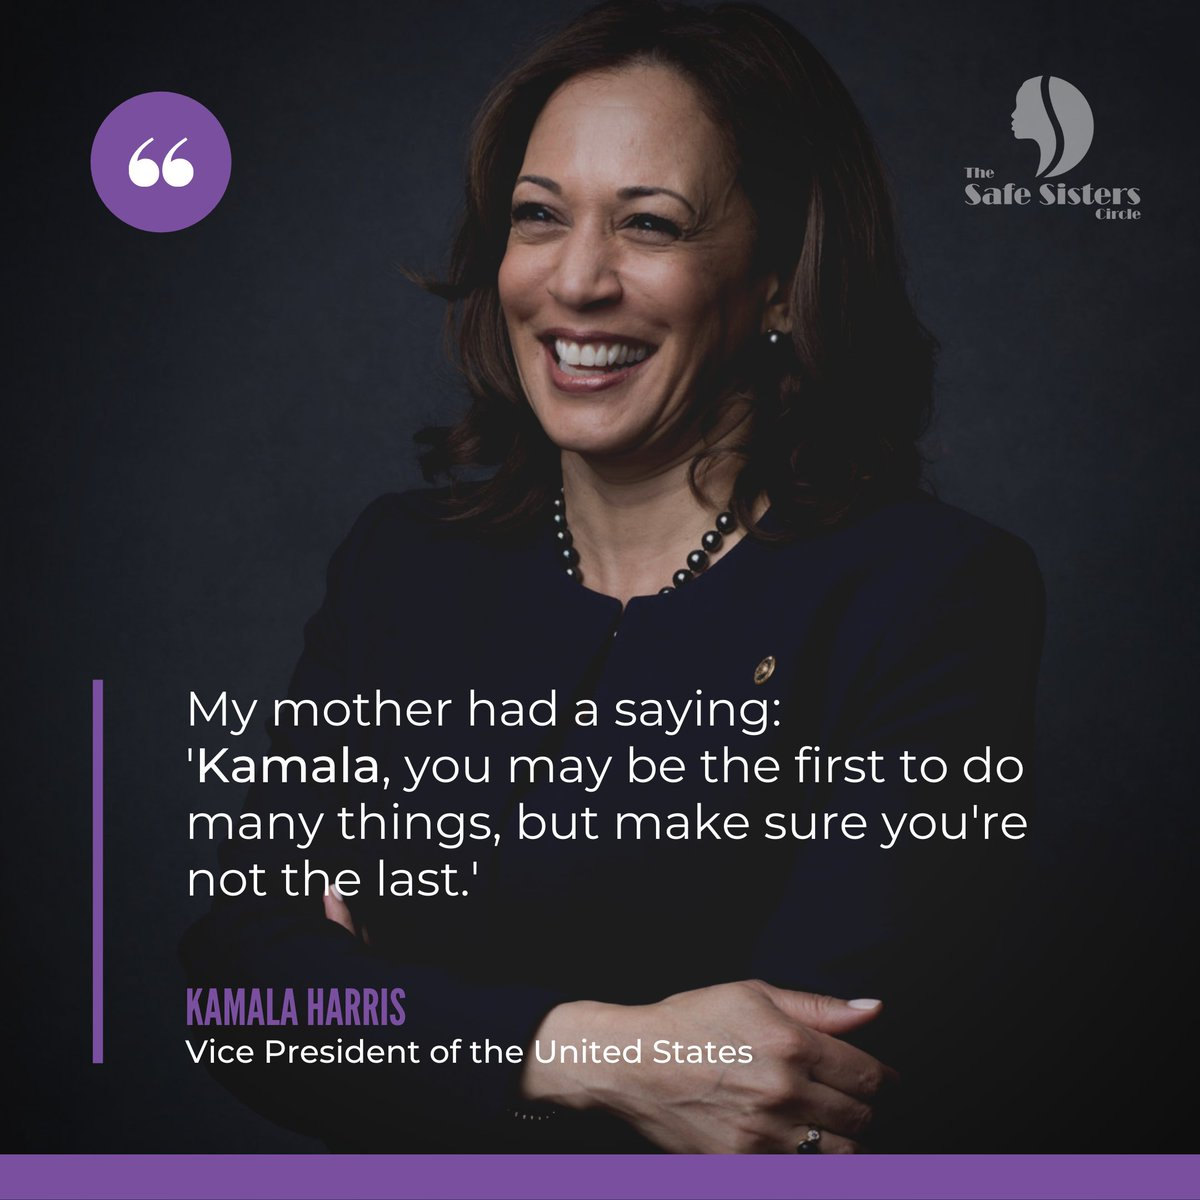 For this #MotivationMonday, we look for some #inspiration from America's first female, first Black and first South Asian vice president, @KamalaHarris!   #blackexcellence #inspirationalquote #inspirational #quote #VP #Kamala #motivationalquote